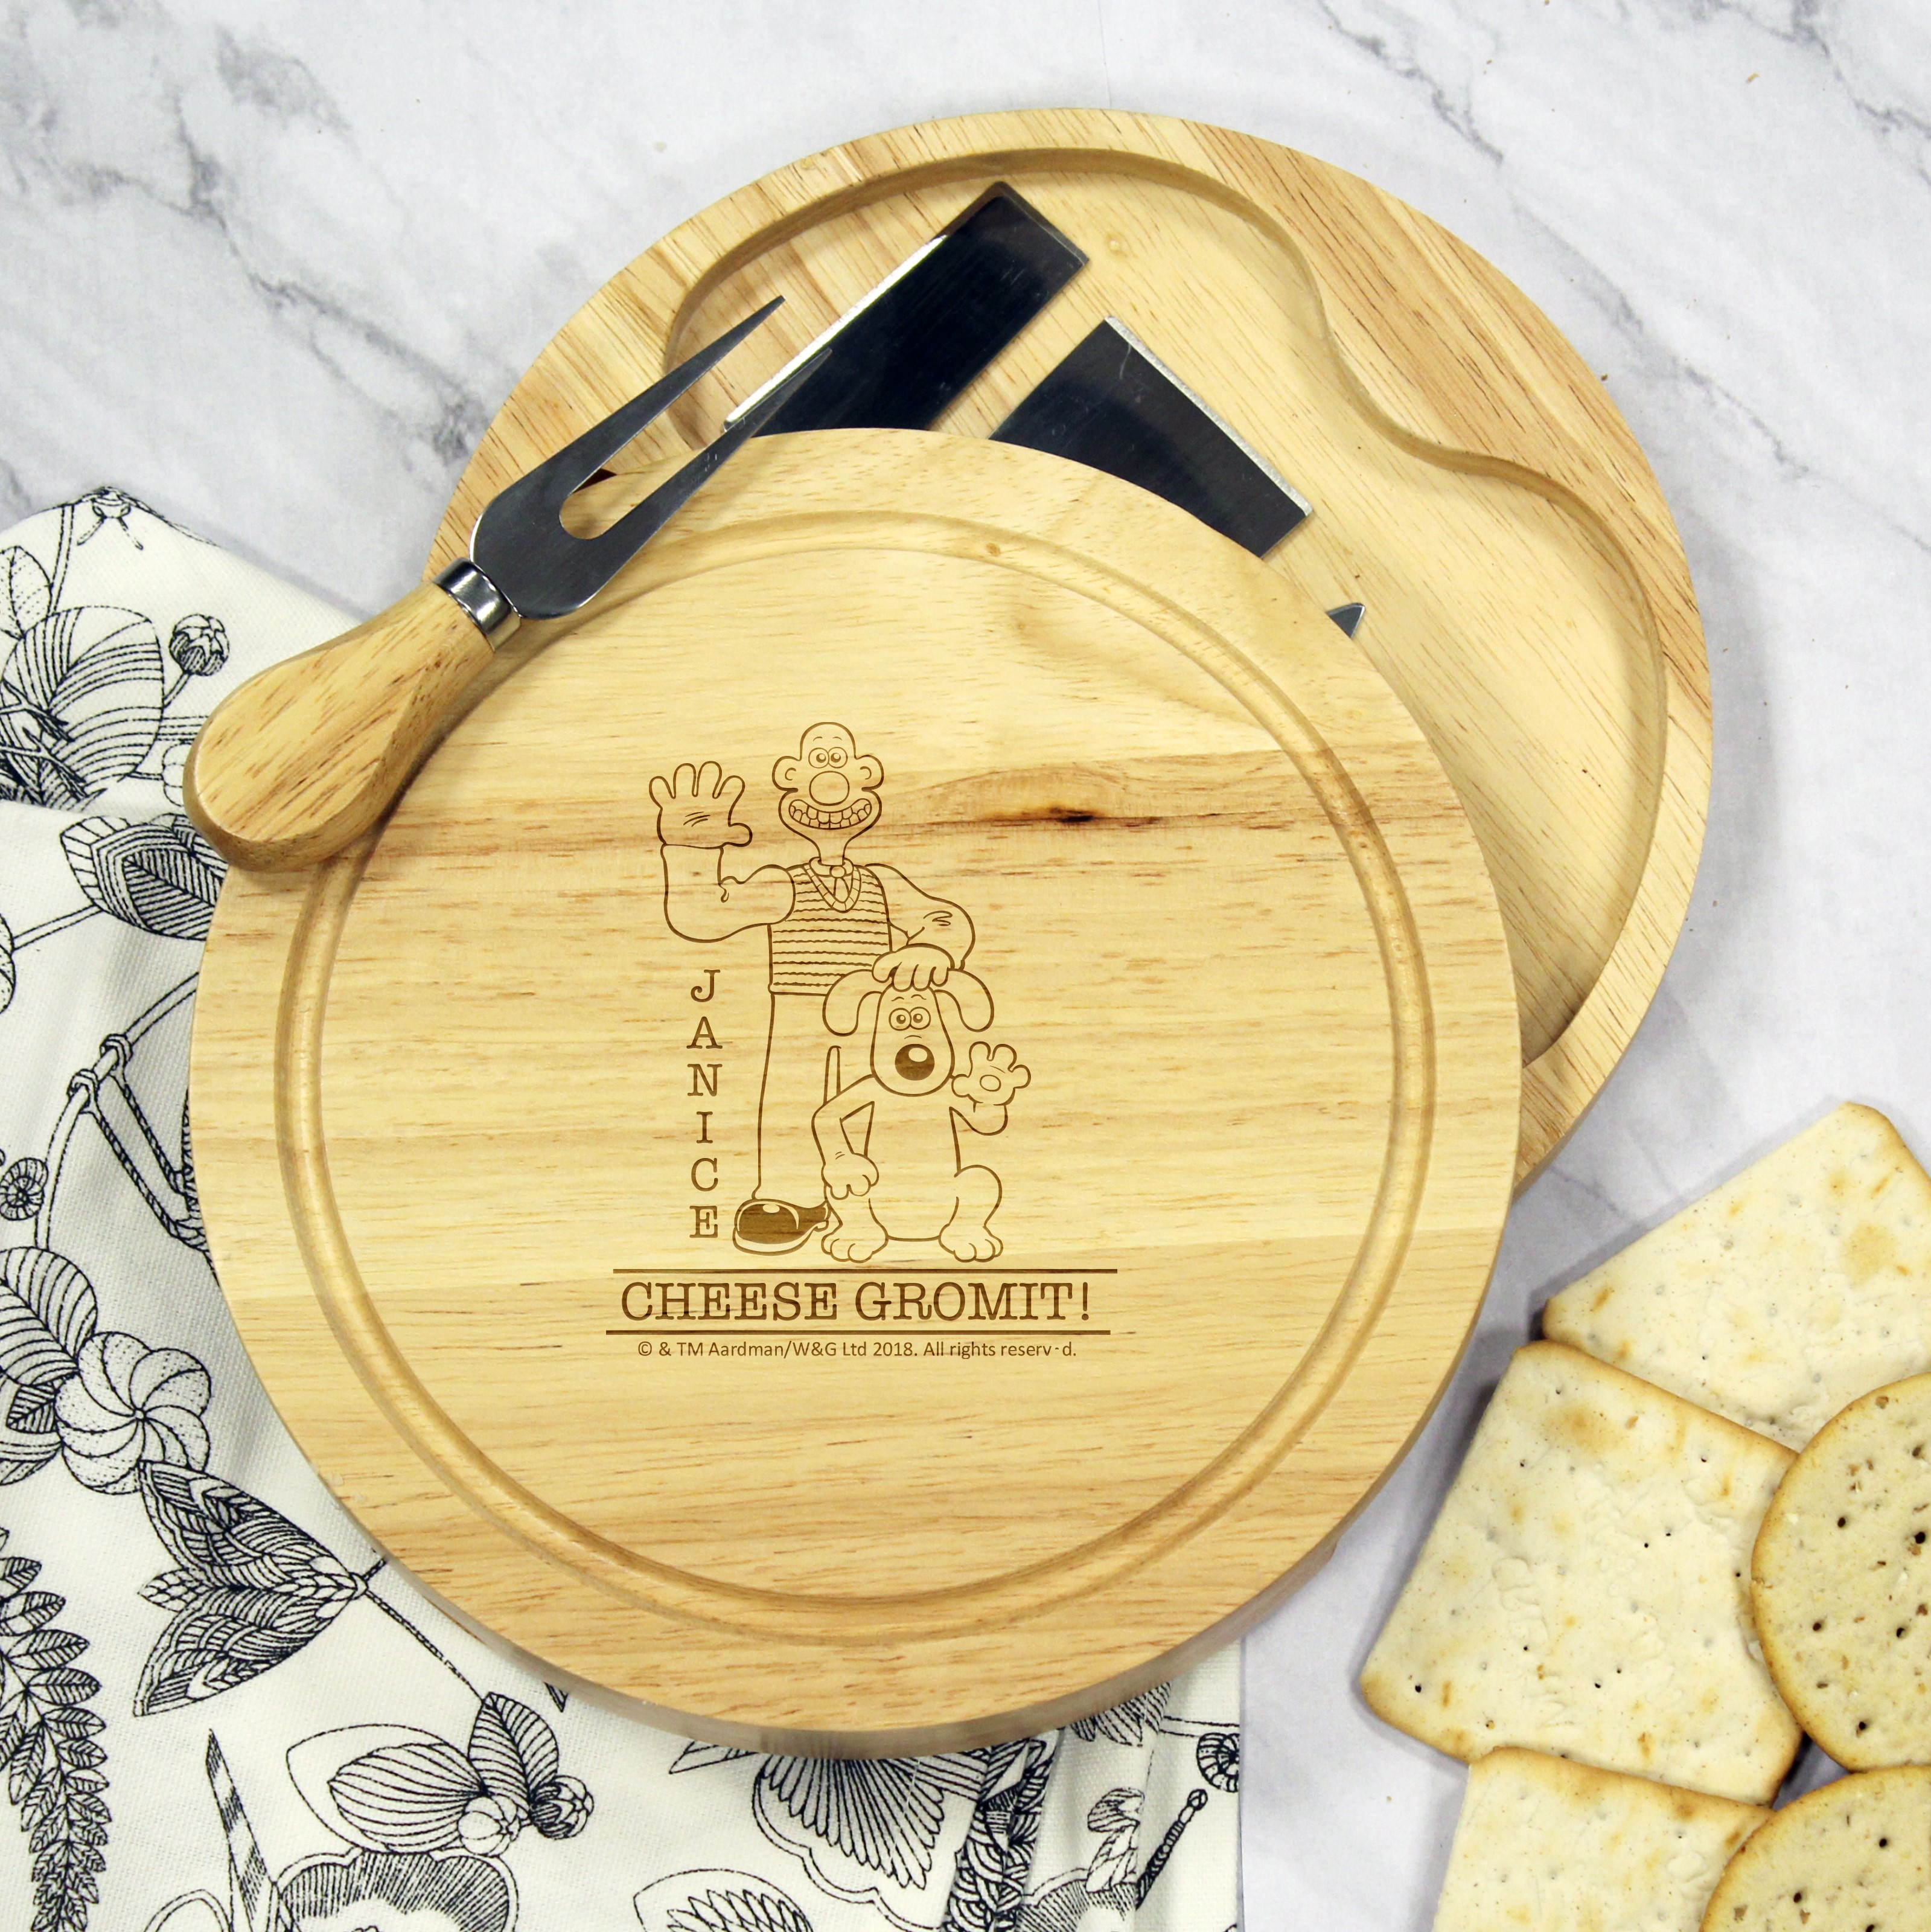 W & G 'Cheese Gromit' Round Cheese Board and Knives